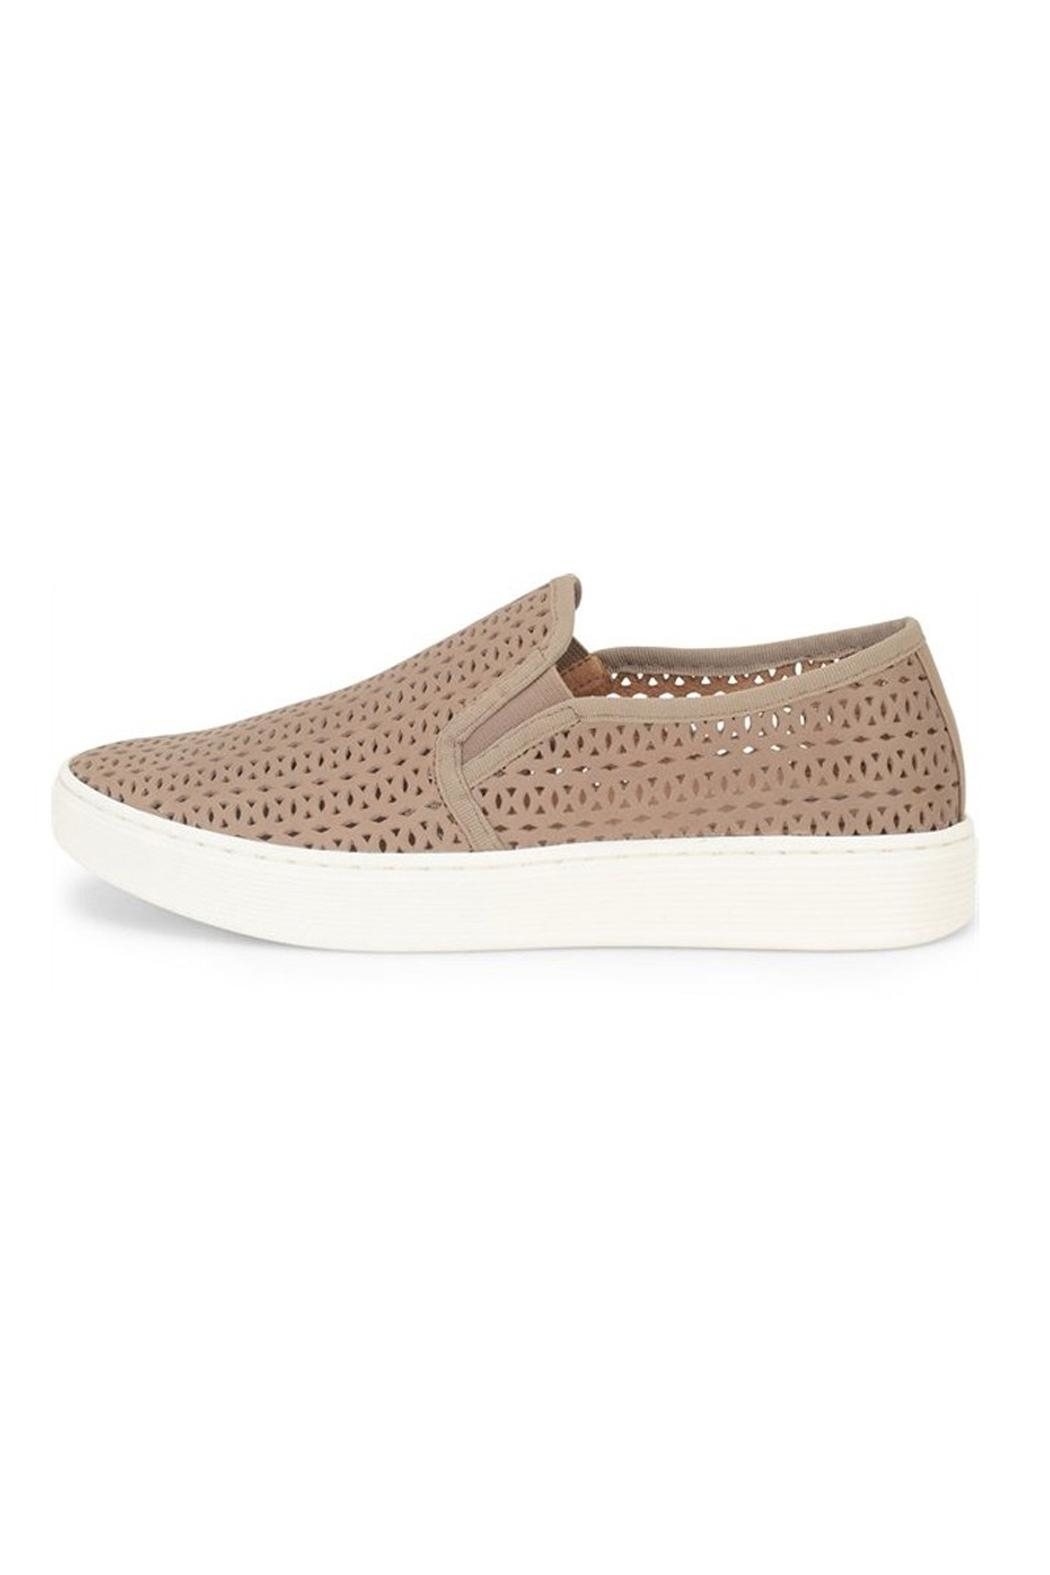 Sofft Beige Perforated Sneaker - Main Image